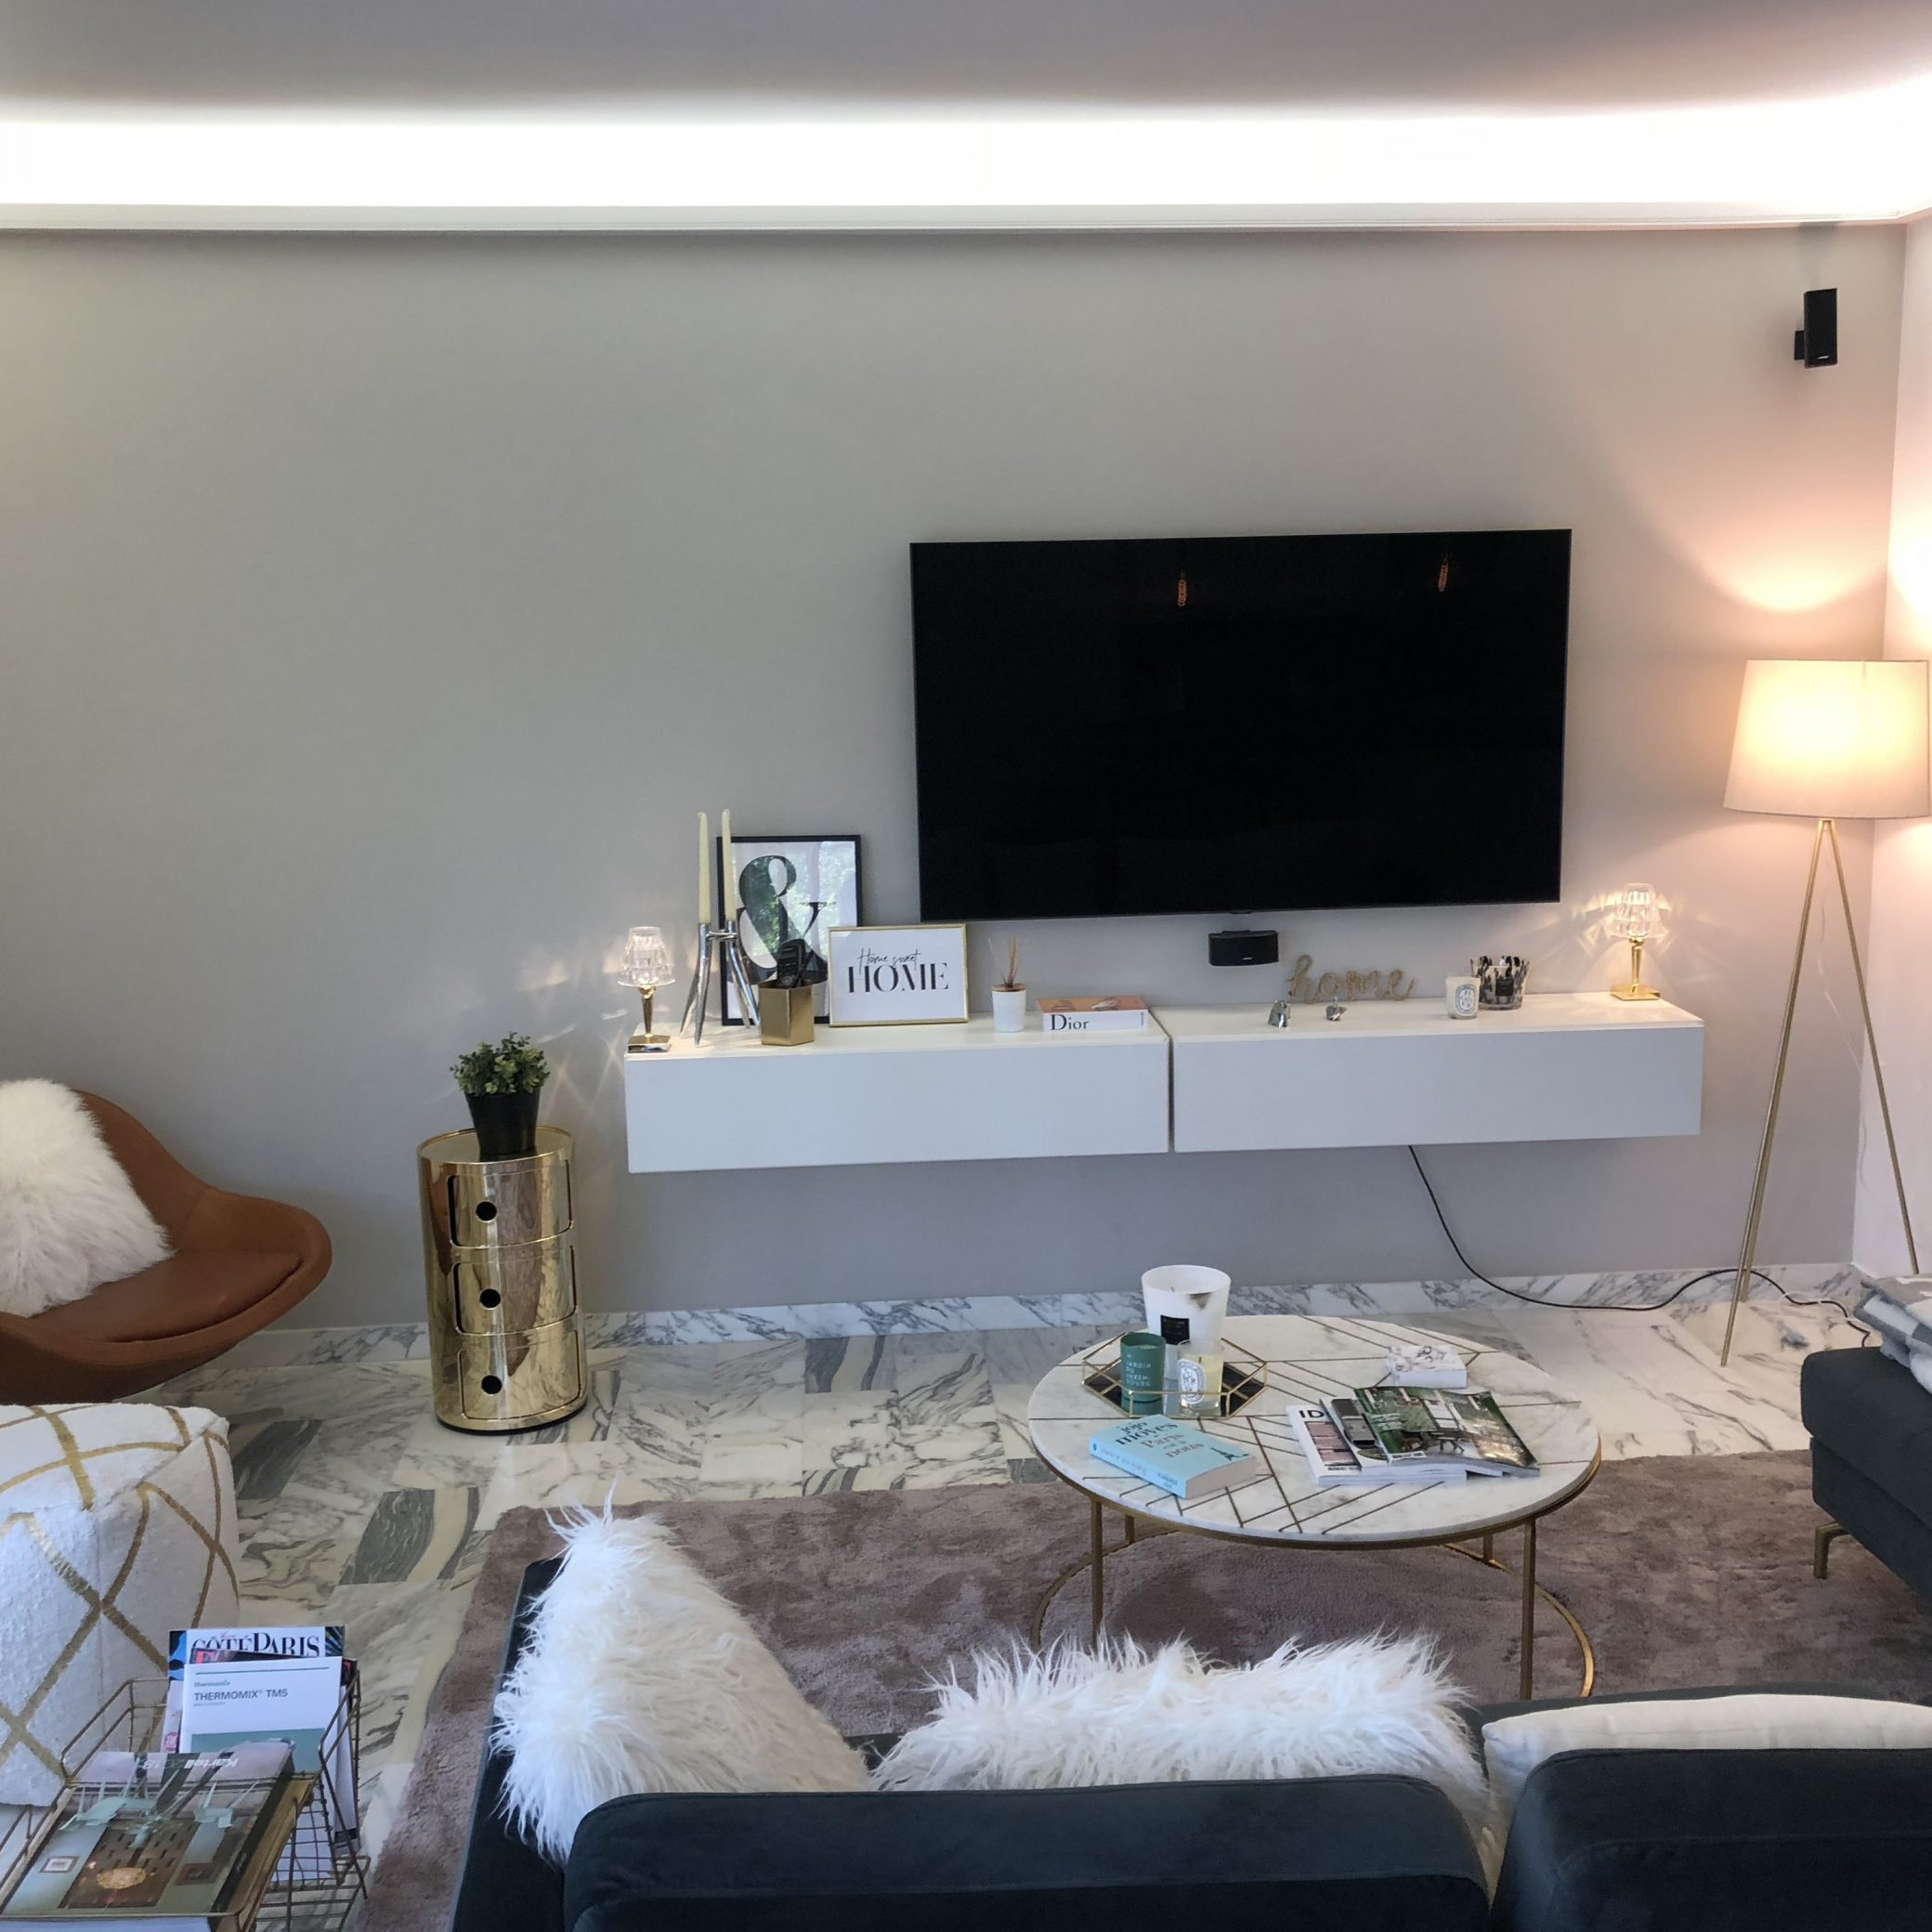 Maison Carla - Appartement Contemporain